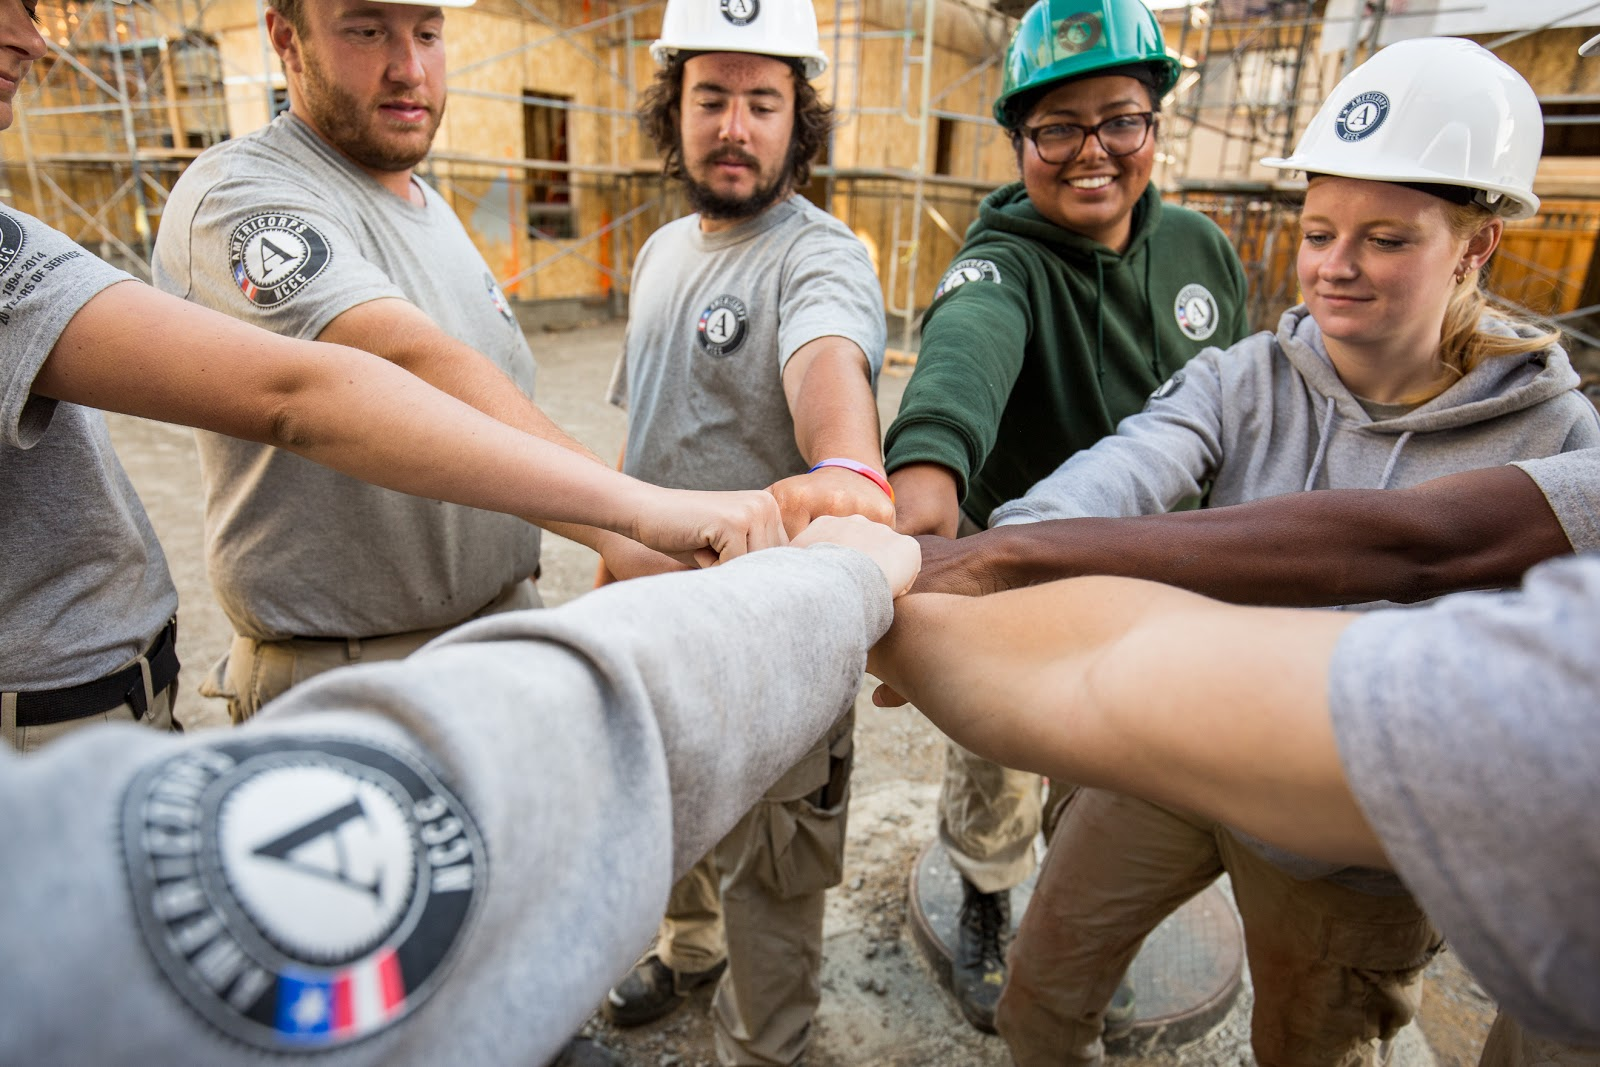 AmeriCorps members stand in a circle with their hands in the middle